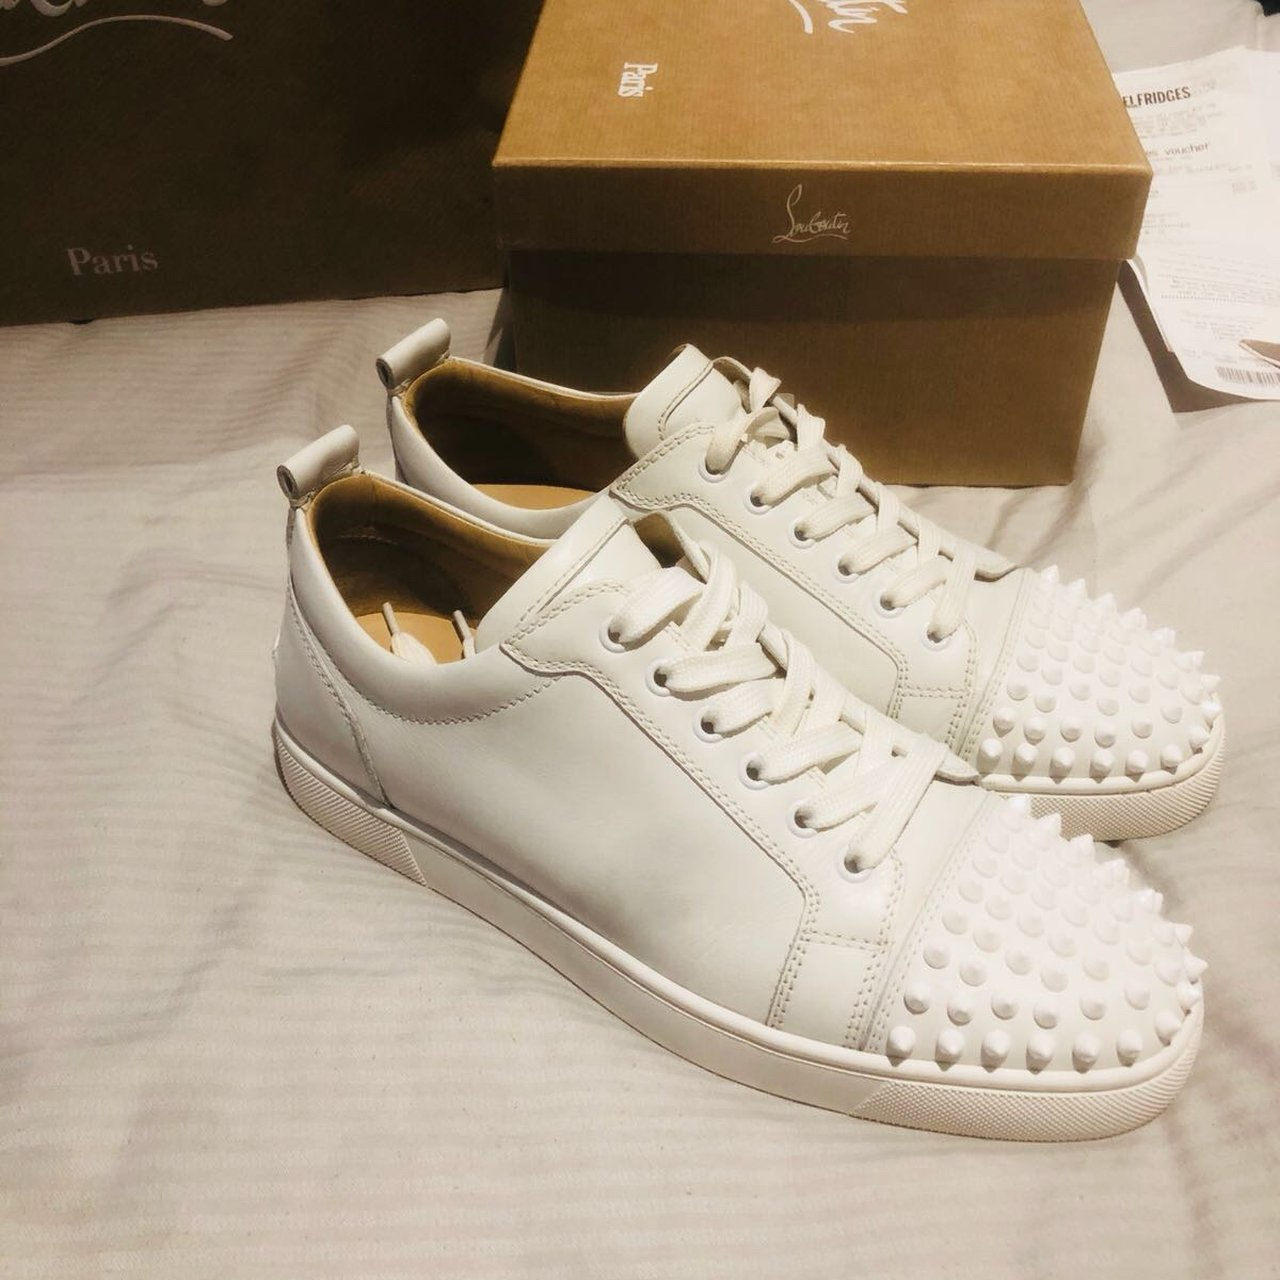 CHRISTIAN LOUBOUTIN MENS WHITE TRAINERS size 6.5. Have been - Depop 290d1c34b9a0